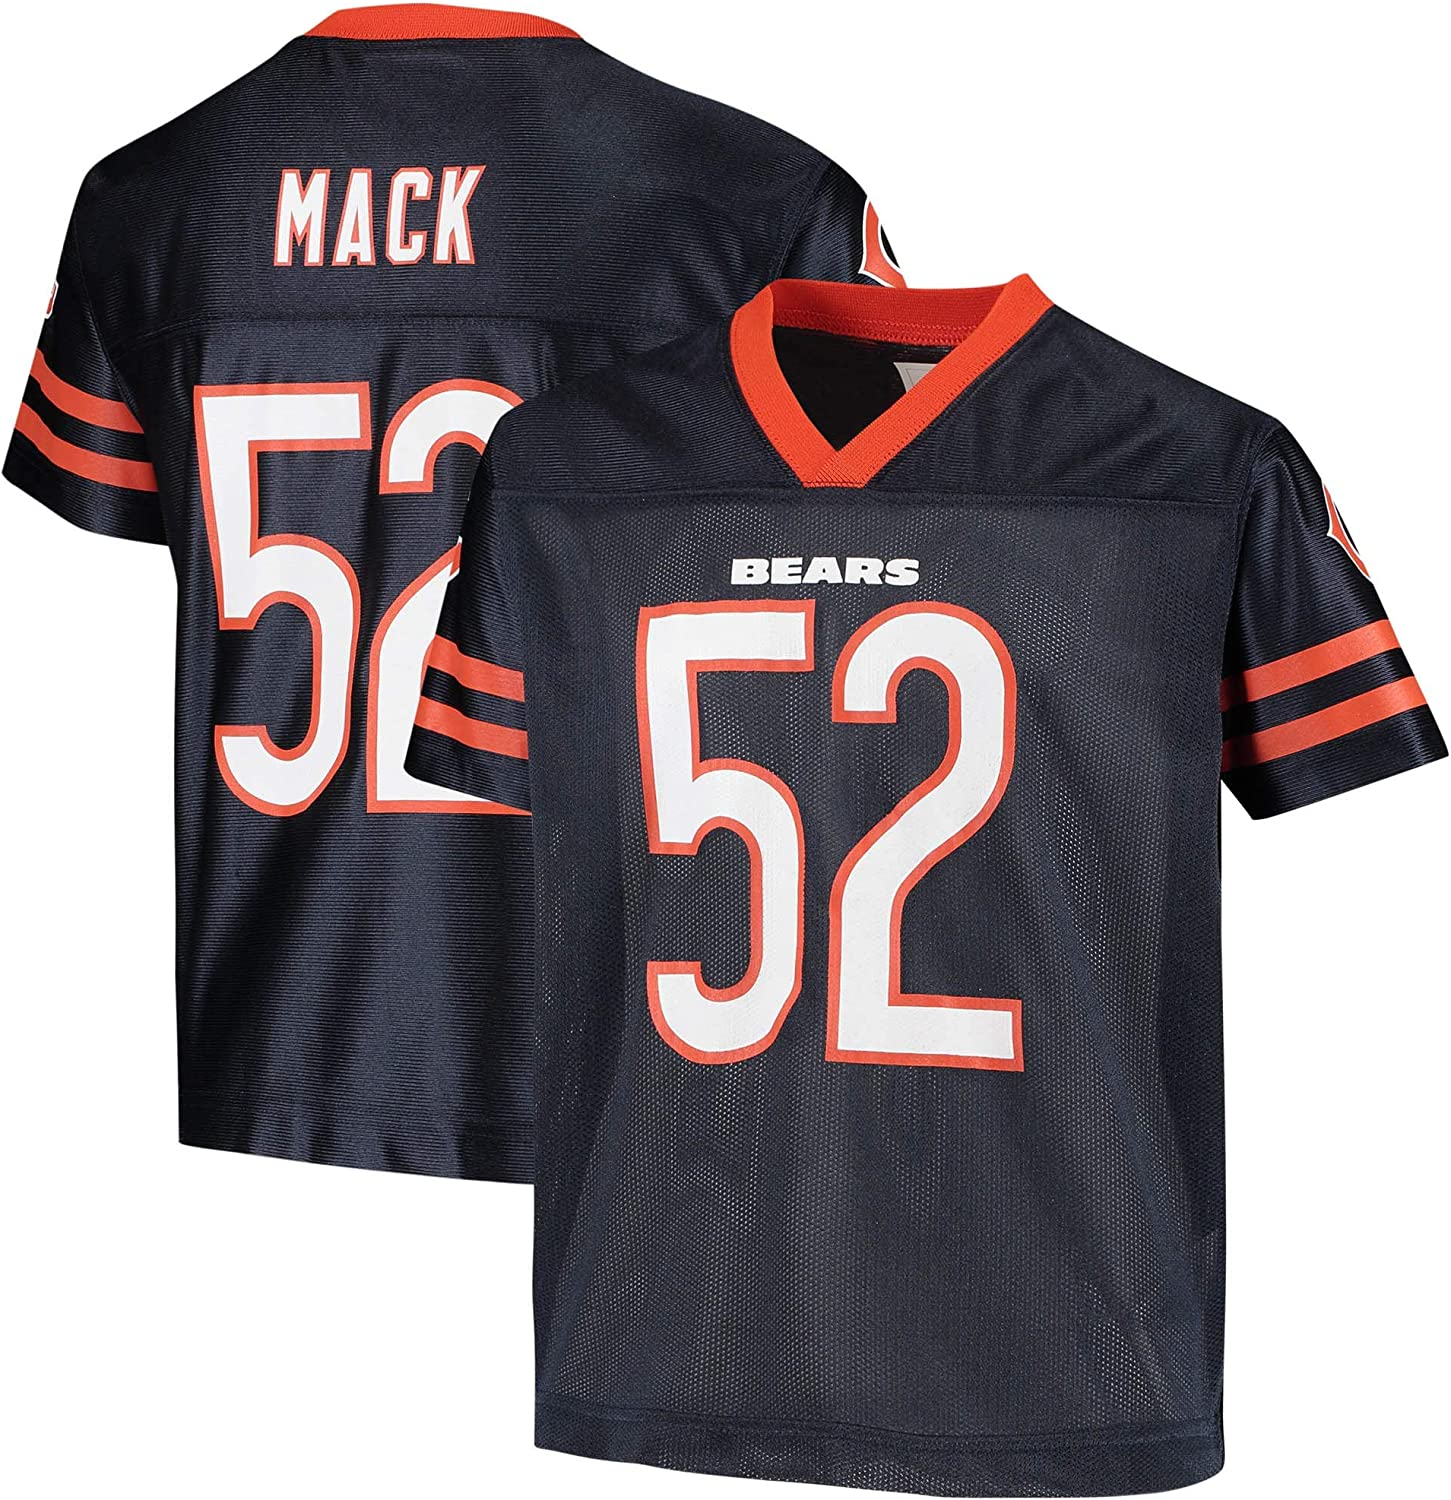 Khalil Mack Chicago Bears Navy #52 4-20 2021 new Jersey Player Home favorite Youth